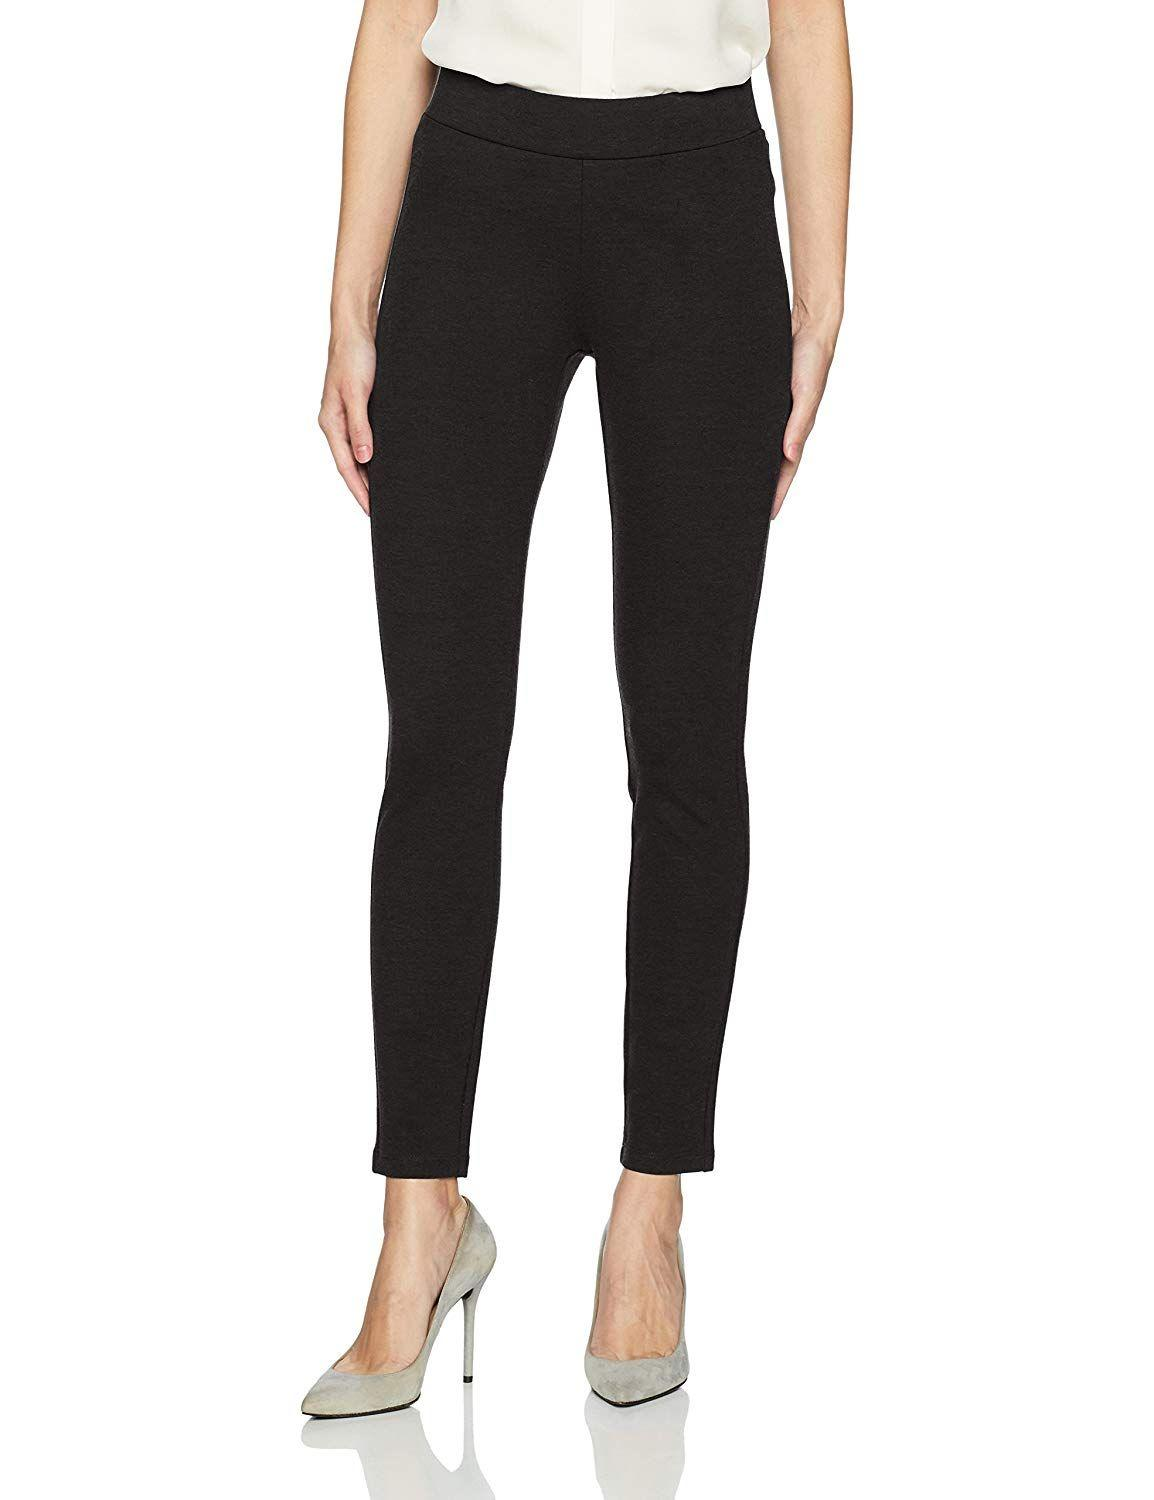 """<h3><a href=""""https://www.amazon.com/NYDJ-Womens-Basic-Ponte-Leggings/dp/B06XL1DW1M"""" rel=""""nofollow noopener"""" target=""""_blank"""" data-ylk=""""slk:NYDJ Basic Pull On Ponte Knit Leggings"""" class=""""link rapid-noclick-resp"""">NYDJ Basic Pull On Ponte Knit Leggings</a></h3> <p>4.7 out of 5 stars and 18 reviews</p> <p><strong>Promising Review:</strong> Searching for comfortable leggings to travel in that don't look like, well, leggings? Look no further. Commenter <a href=""""https://www.amazon.com/gp/customer-reviews/R3B53DKBQR7MF1"""" rel=""""nofollow noopener"""" target=""""_blank"""" data-ylk=""""slk:Bird"""" class=""""link rapid-noclick-resp"""">Bird</a> writes, """"Love these leggings. They have a great fit, do follow directions and get one size down. I love them for long flights and travel. They wash really well.""""</p> <br> <br> <strong>NYDJ</strong> Basic Pull On Ponte Knit Leggings, $84.99, available at <a href=""""https://www.amazon.com/NYDJ-Womens-Basic-Ponte-Leggings/dp/B06XL1DW1M"""" rel=""""nofollow noopener"""" target=""""_blank"""" data-ylk=""""slk:Amazon"""" class=""""link rapid-noclick-resp"""">Amazon</a>"""